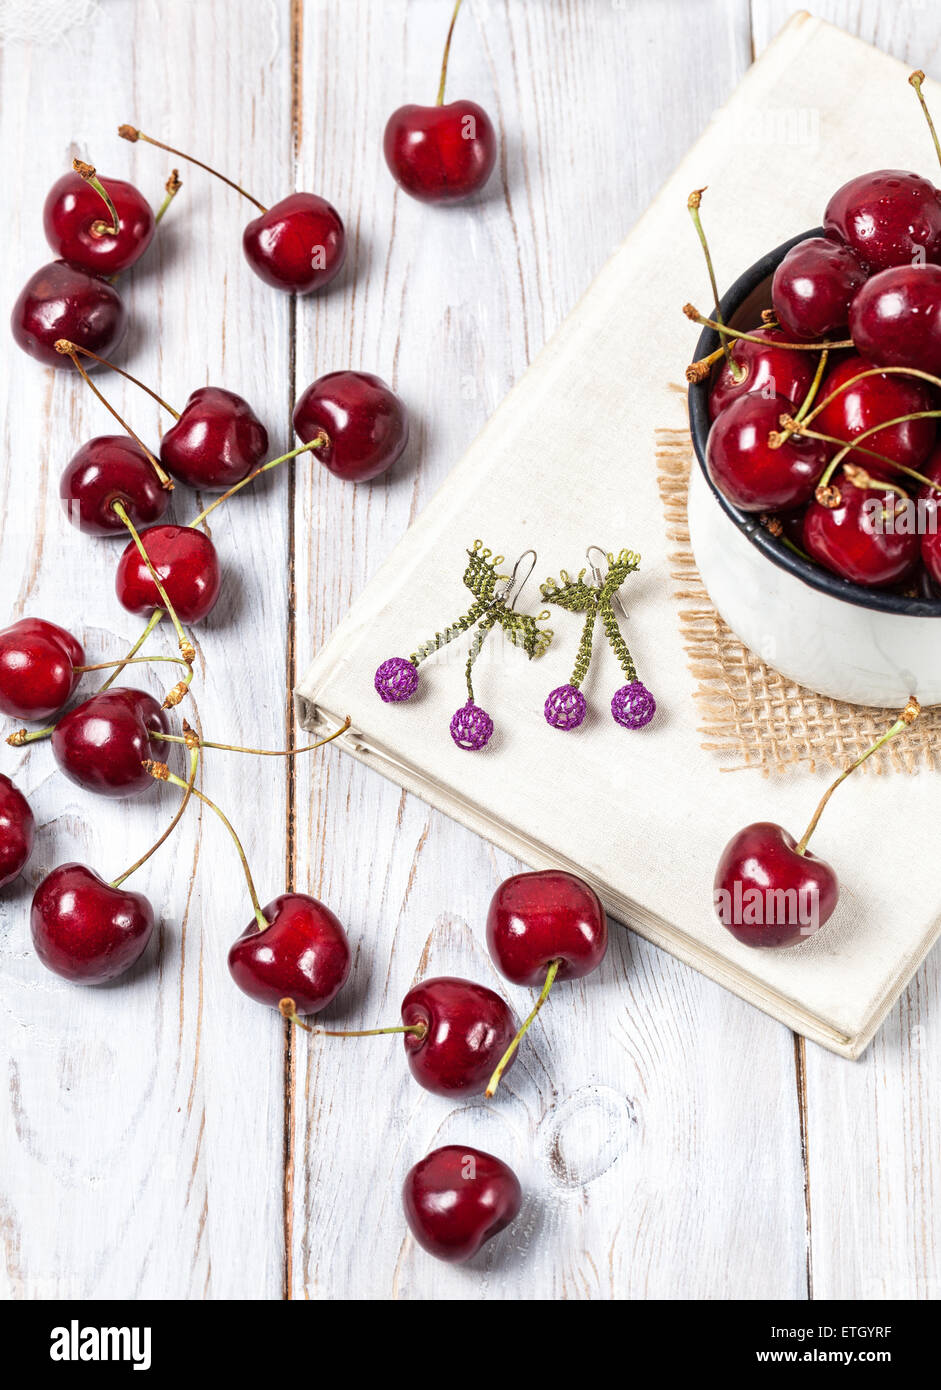 Cherry and handmade earrings on the book and wooden table - Stock Image